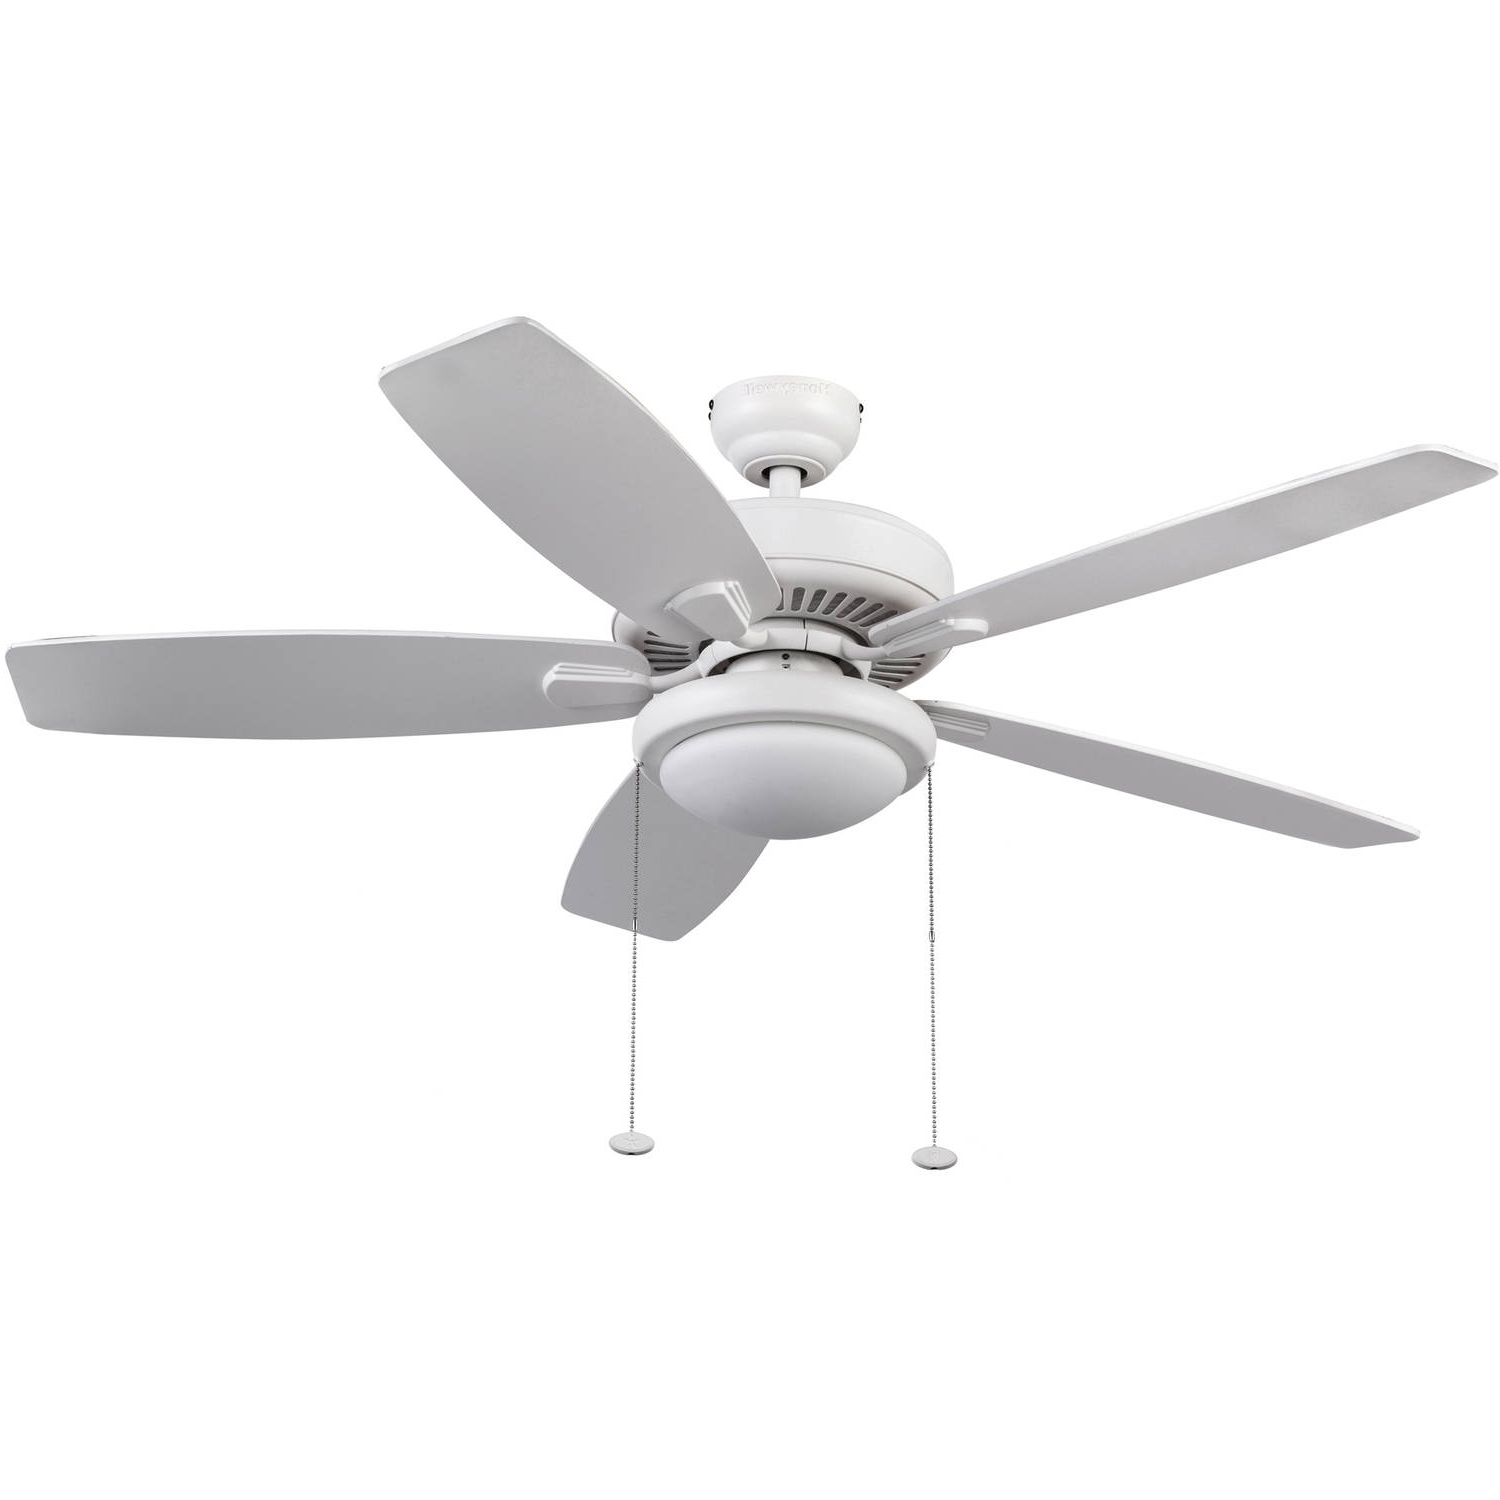 "Most Popular White Outdoor Ceiling Fans With Lights Regarding Honeywell Blufton 52"" White Outdoor Ceiling Fan – Walmart (View 8 of 20)"